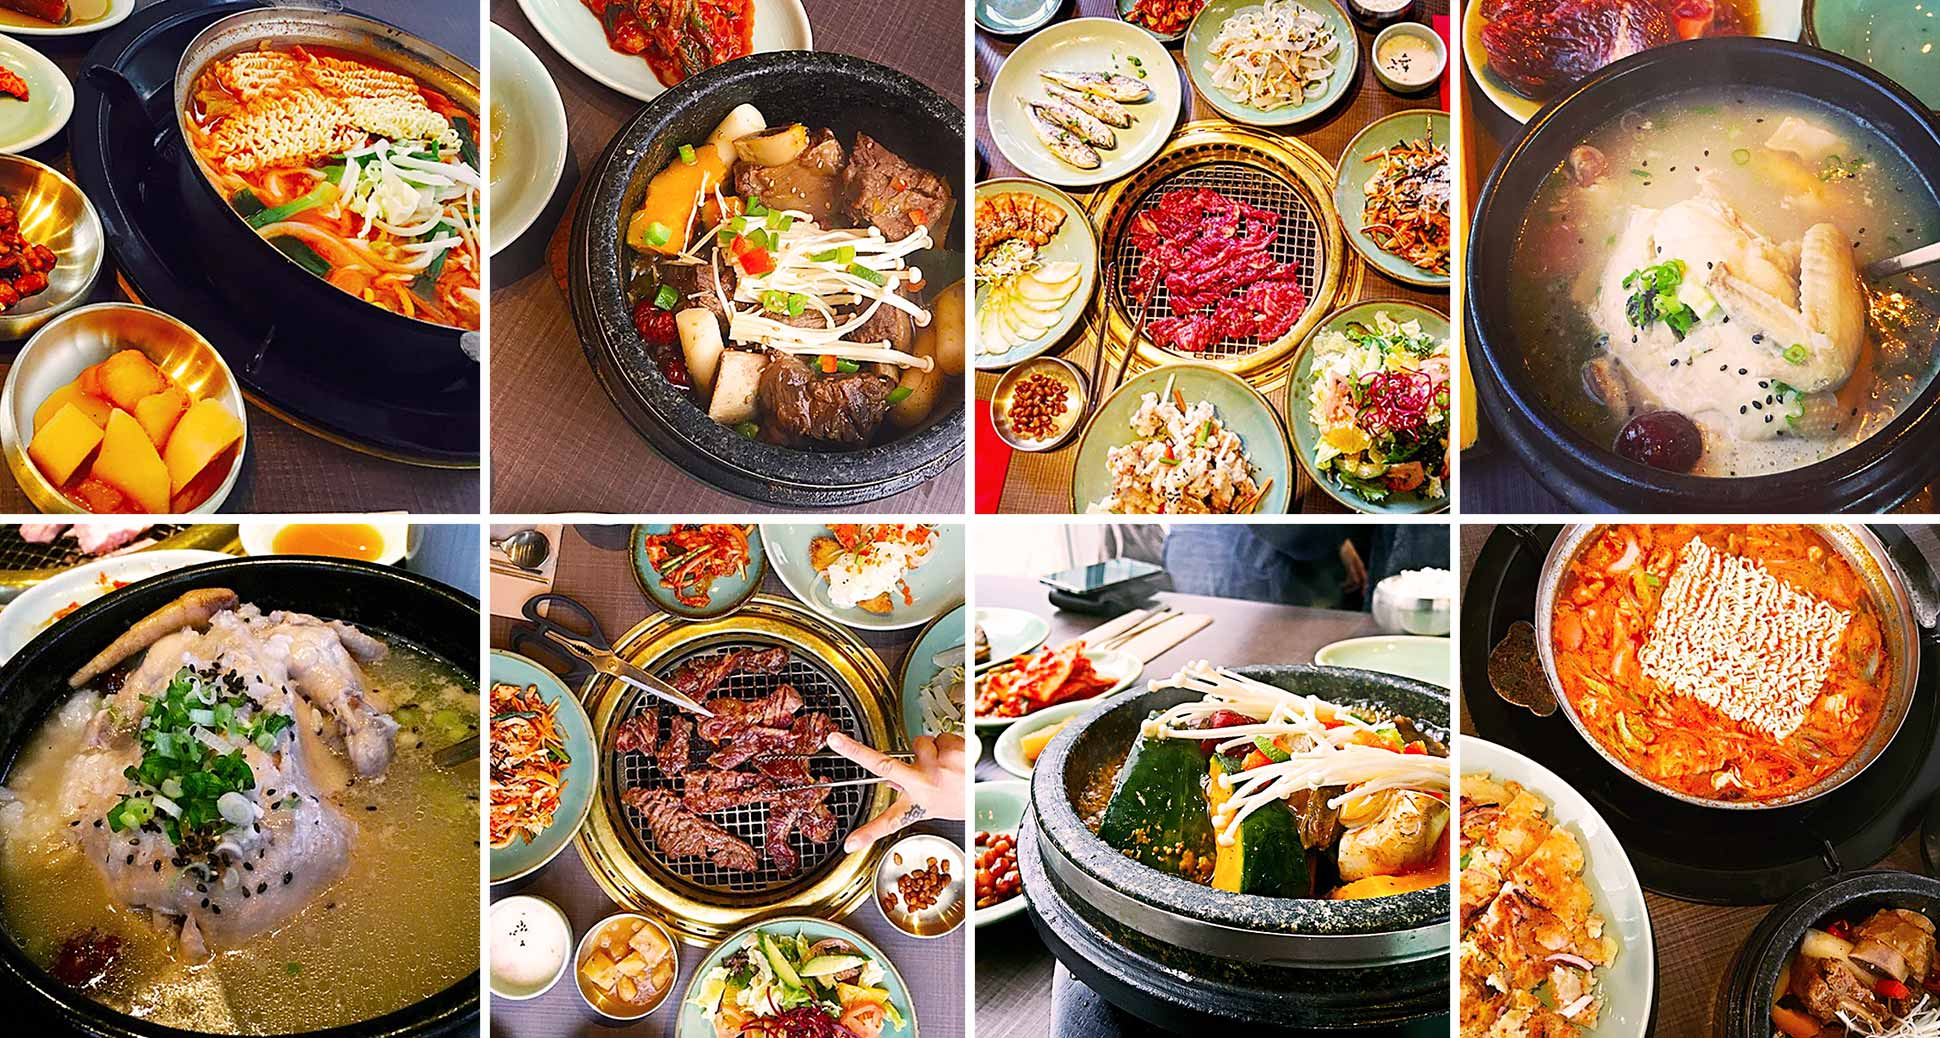 4 Best Korean Food For When It's Cold Outside